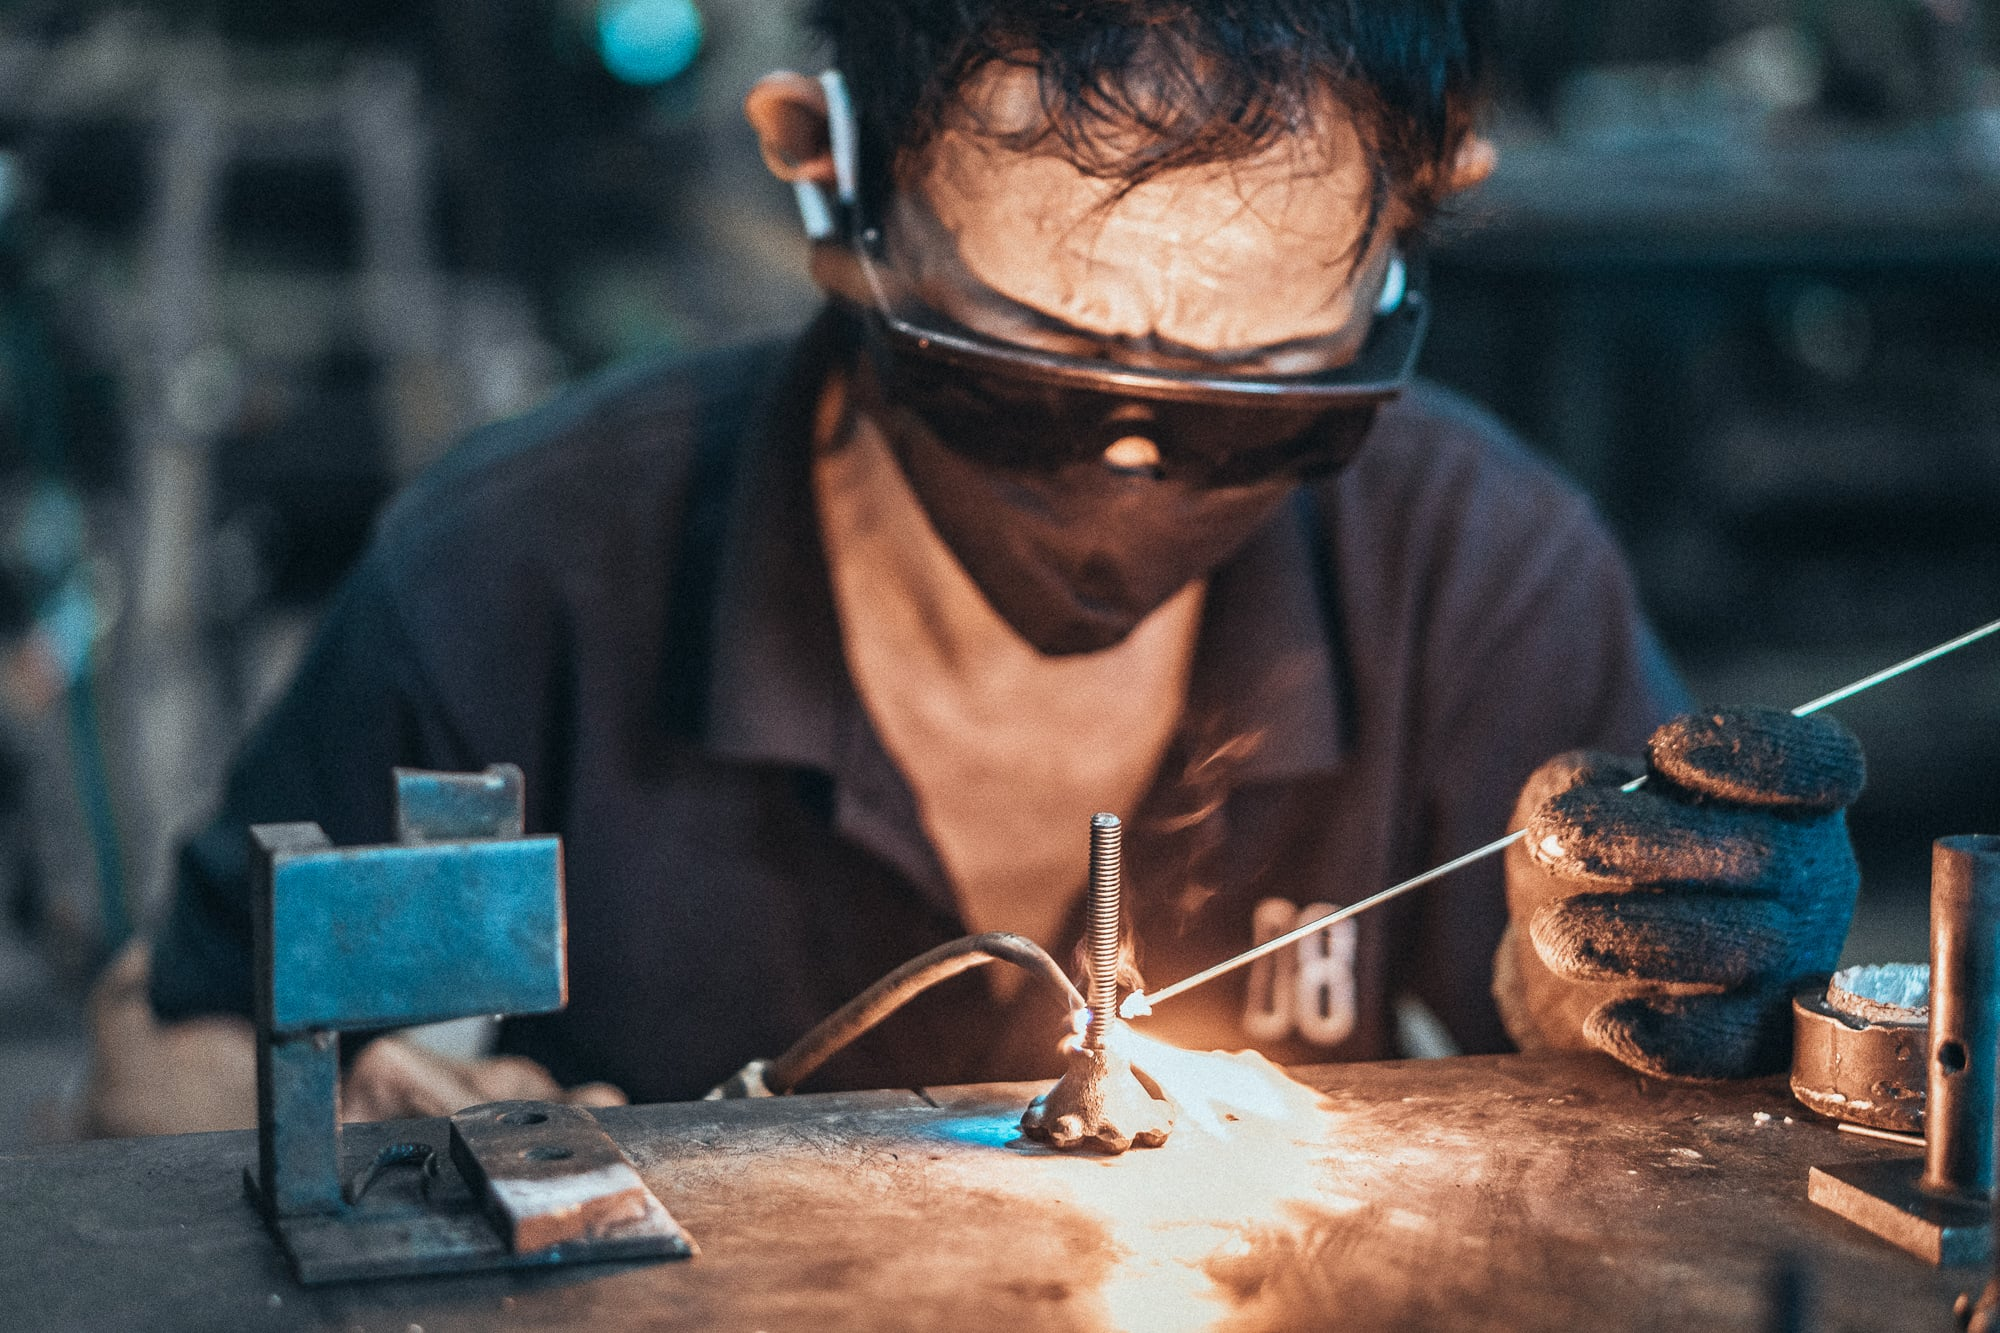 District Eight Vietnam: From Factory Worker To Artisan